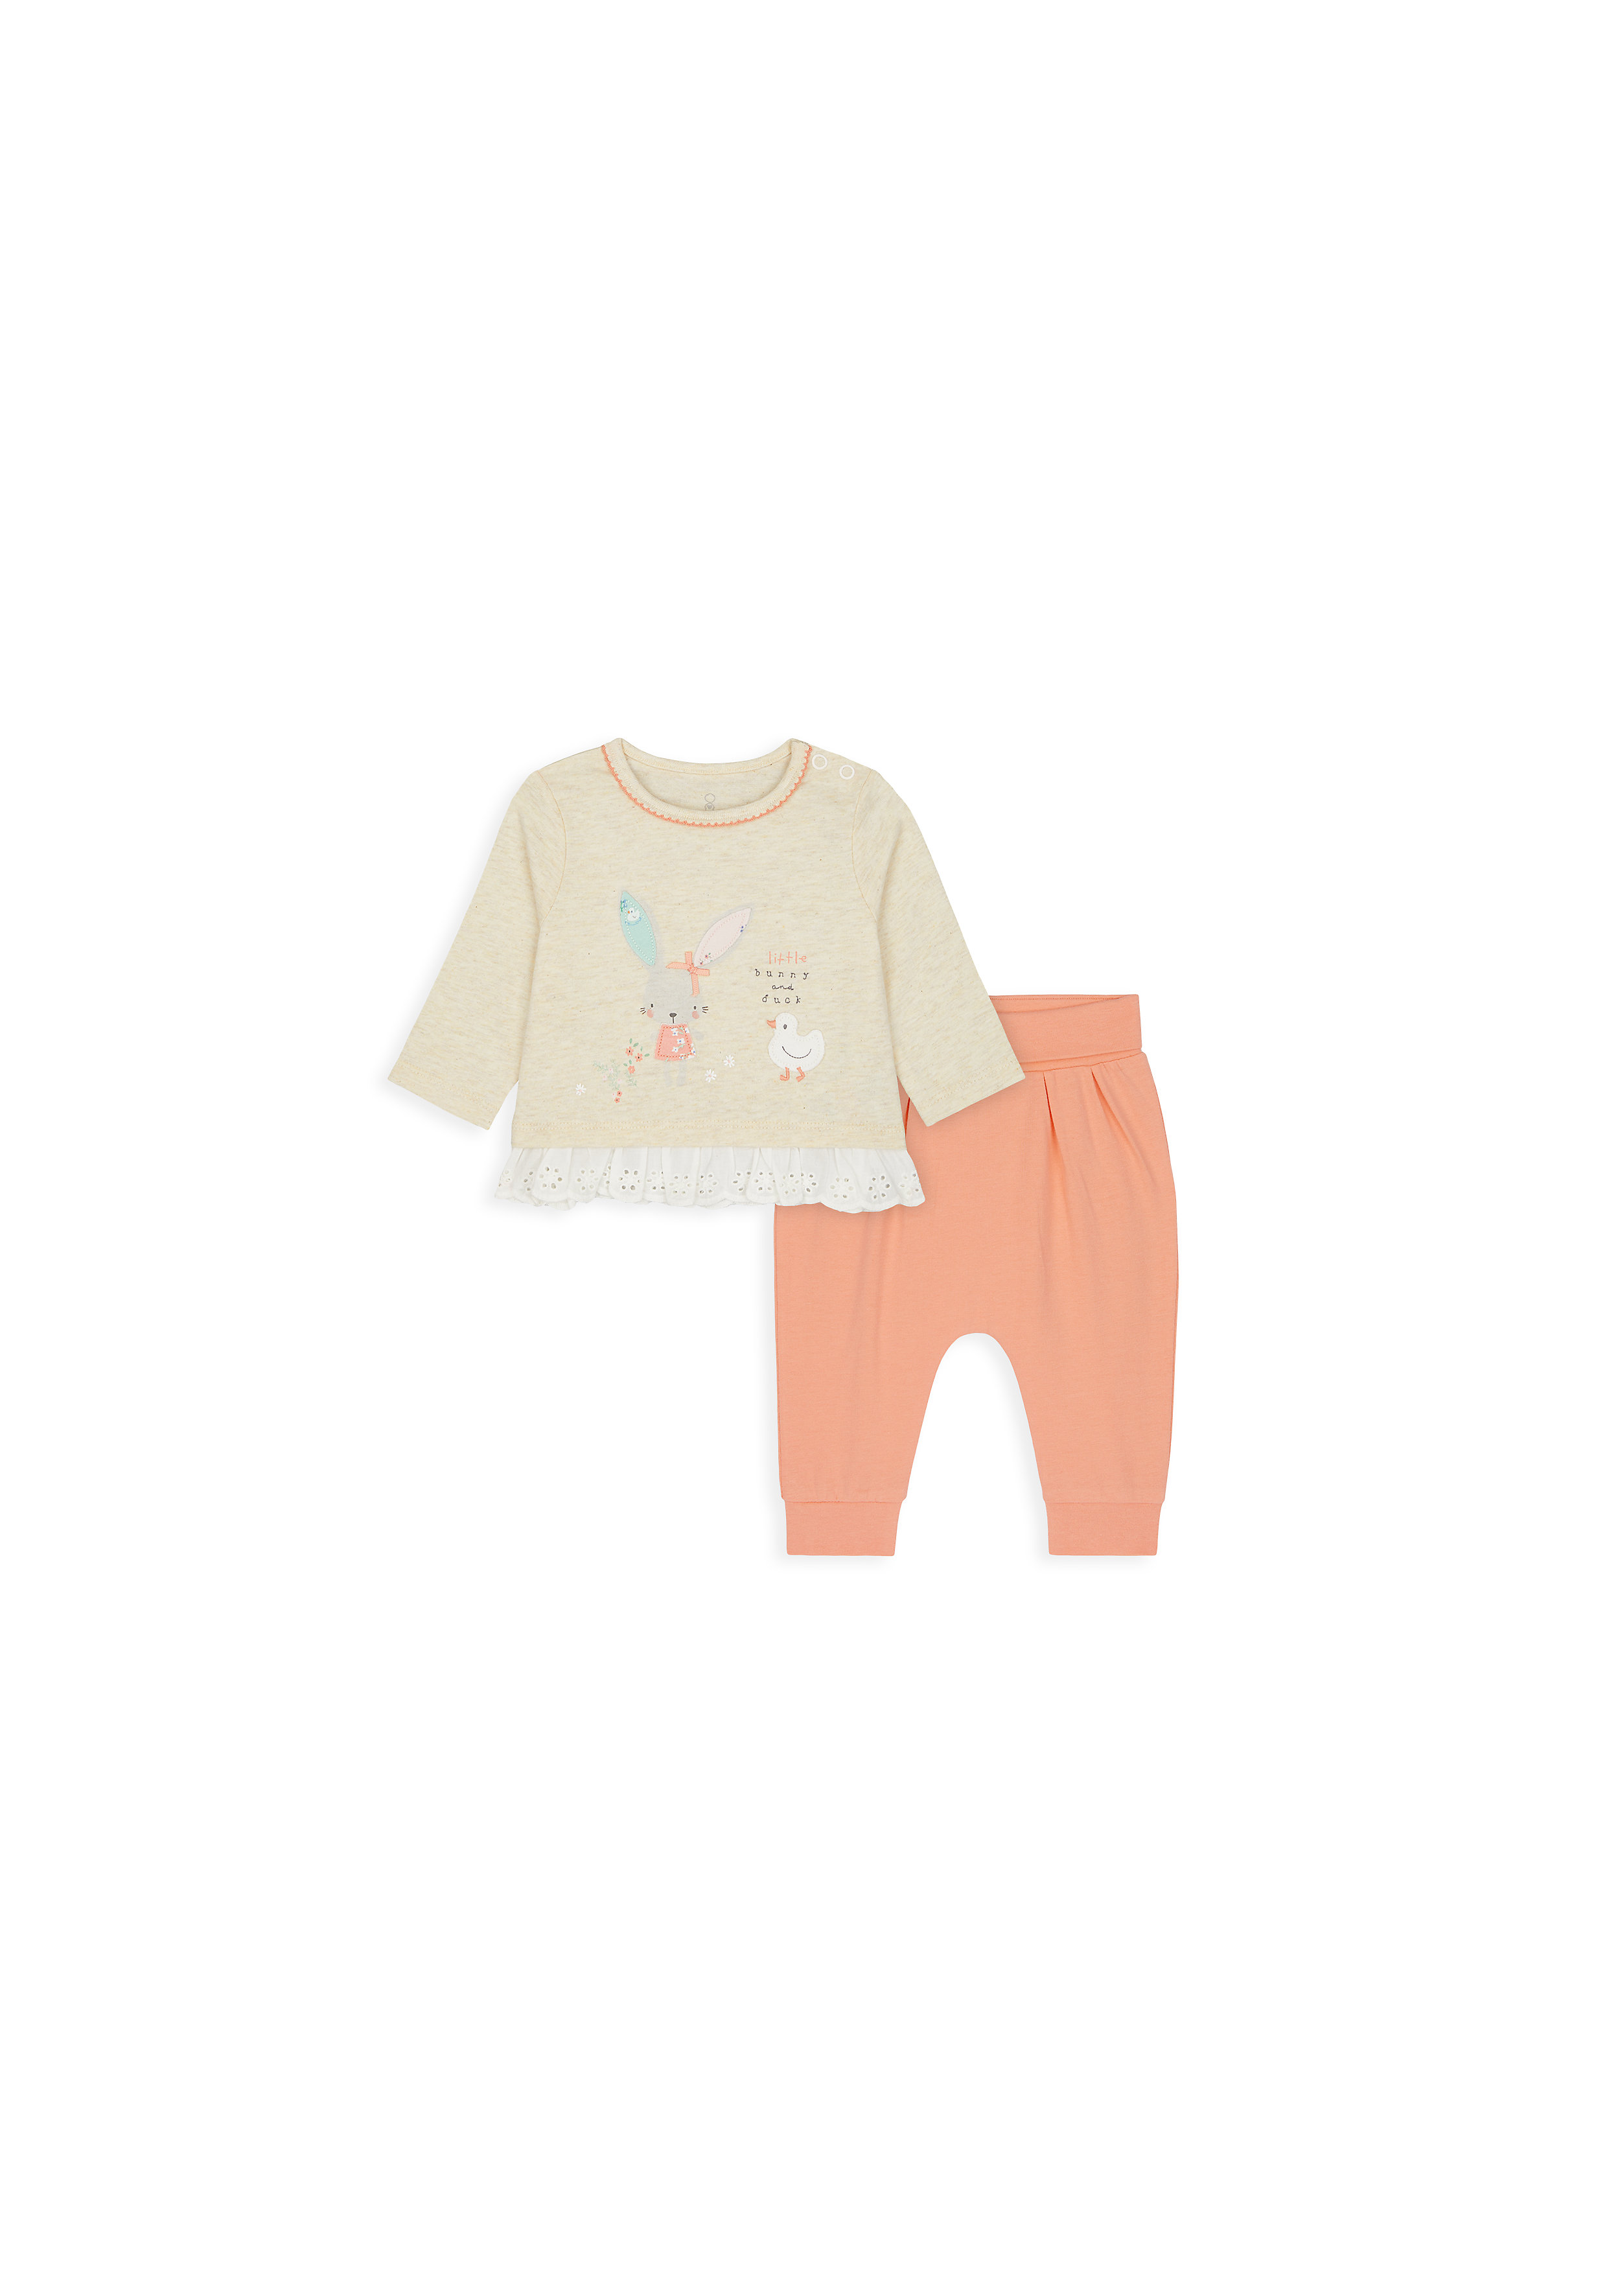 Mothercare | Girls Full Sleeves Tops And Jogger Set Bunny Patchwork - Orange